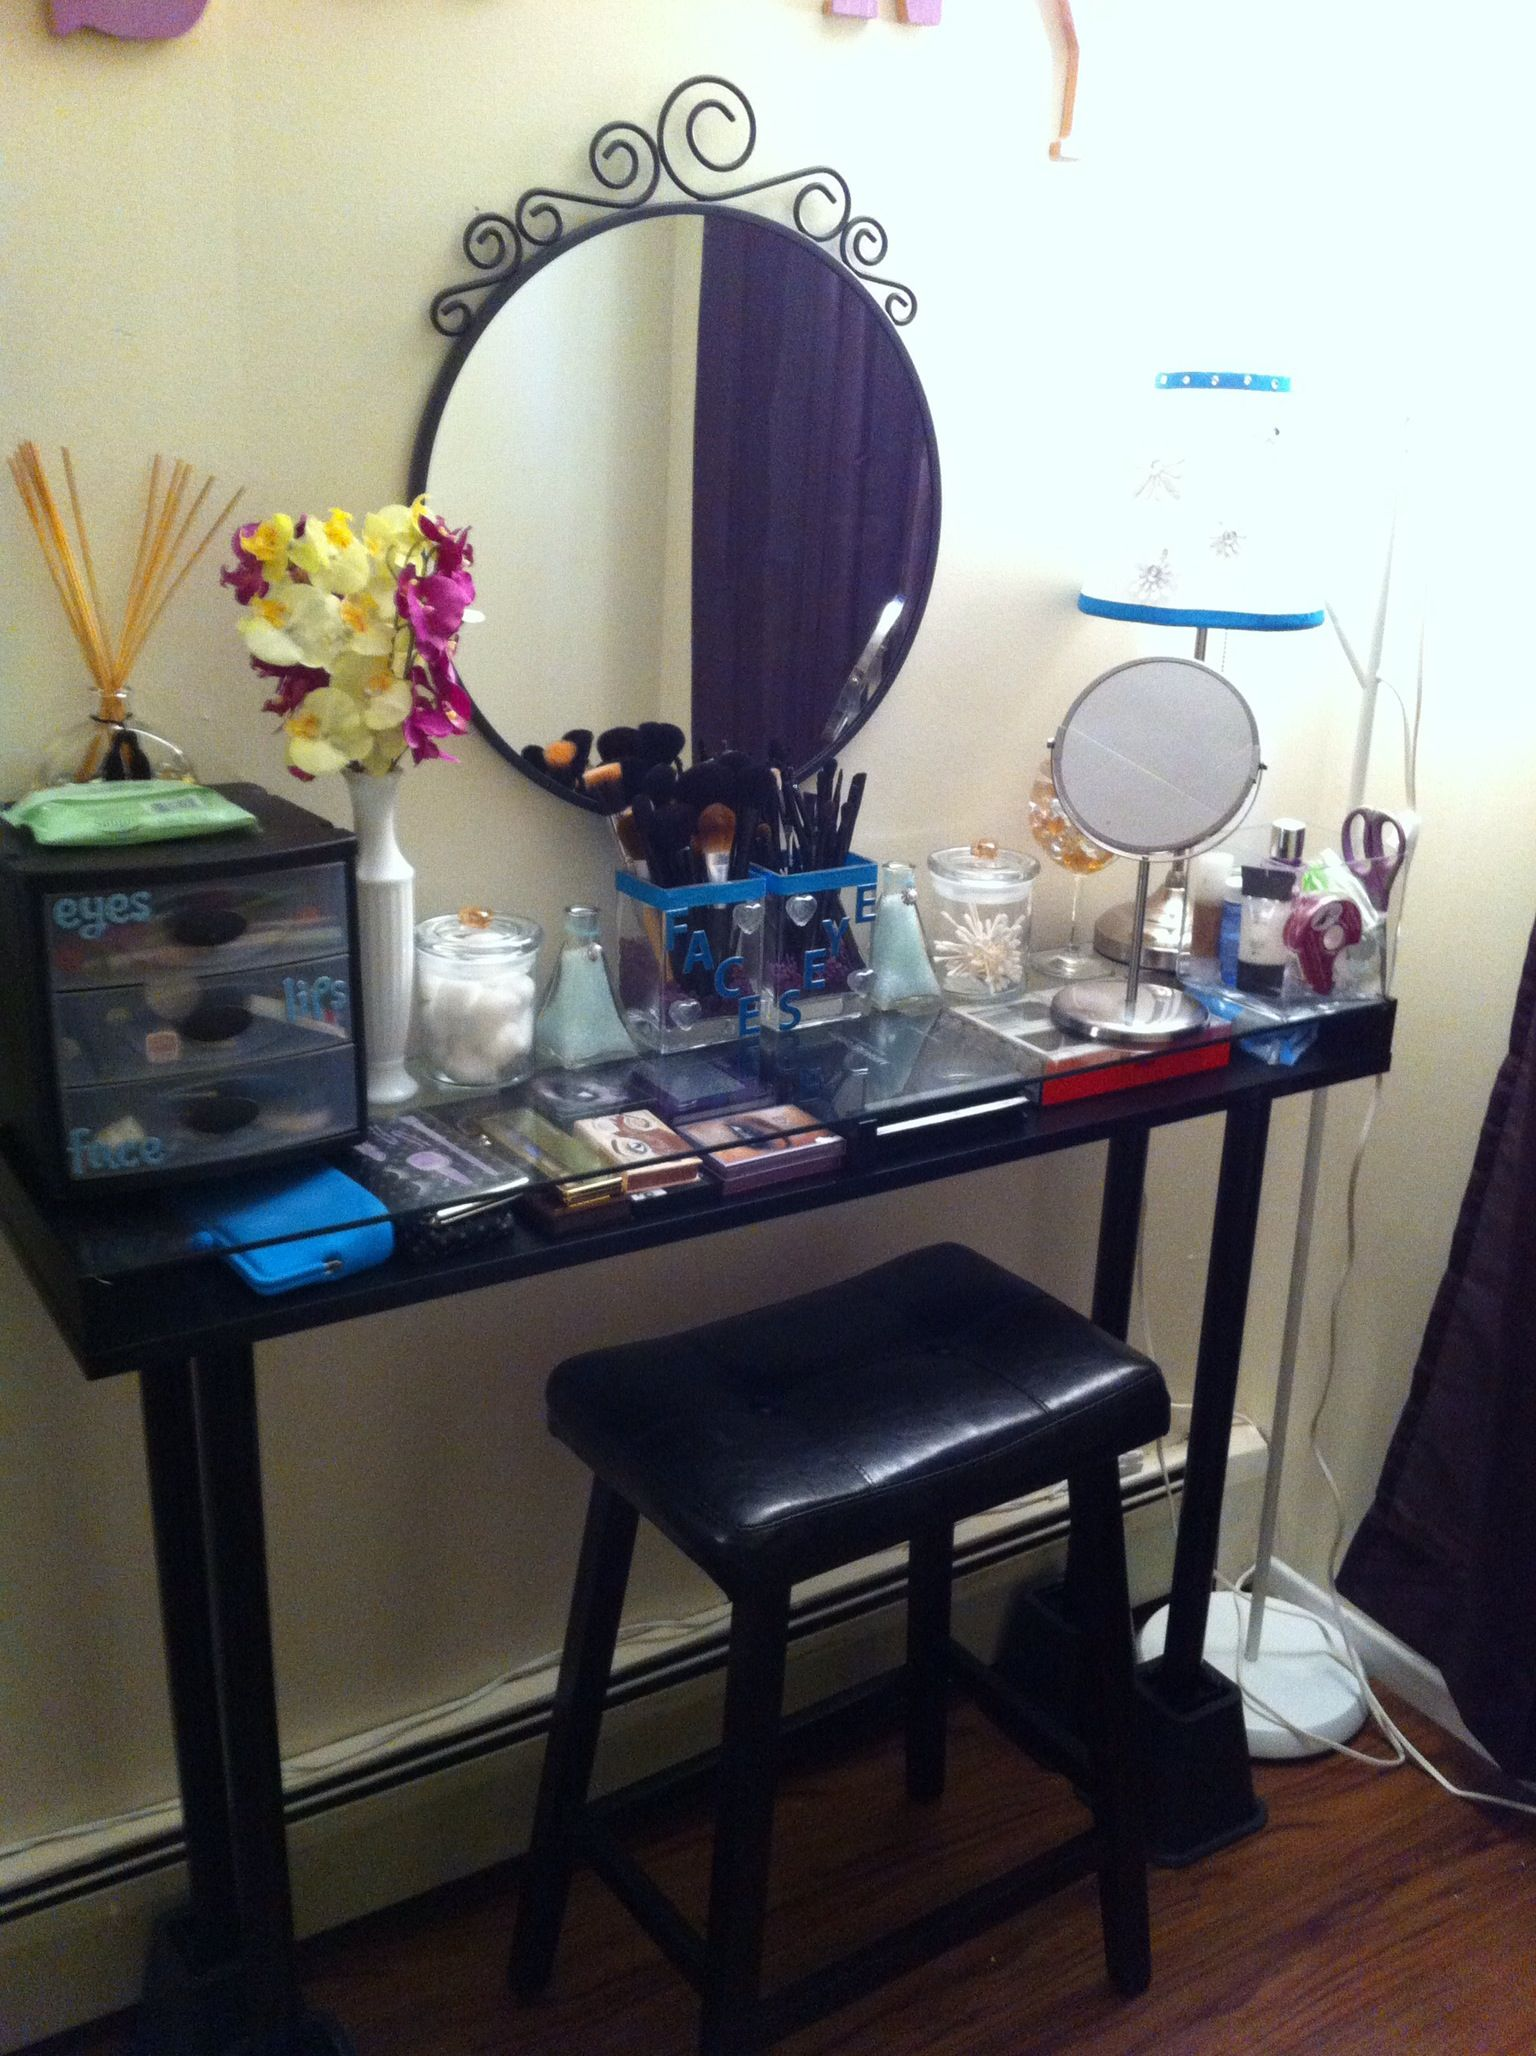 When In Doubt Make Your Own Vanity Table 3 Make Your Own Makeup Cool Things To Make Diy Makeup Vanity